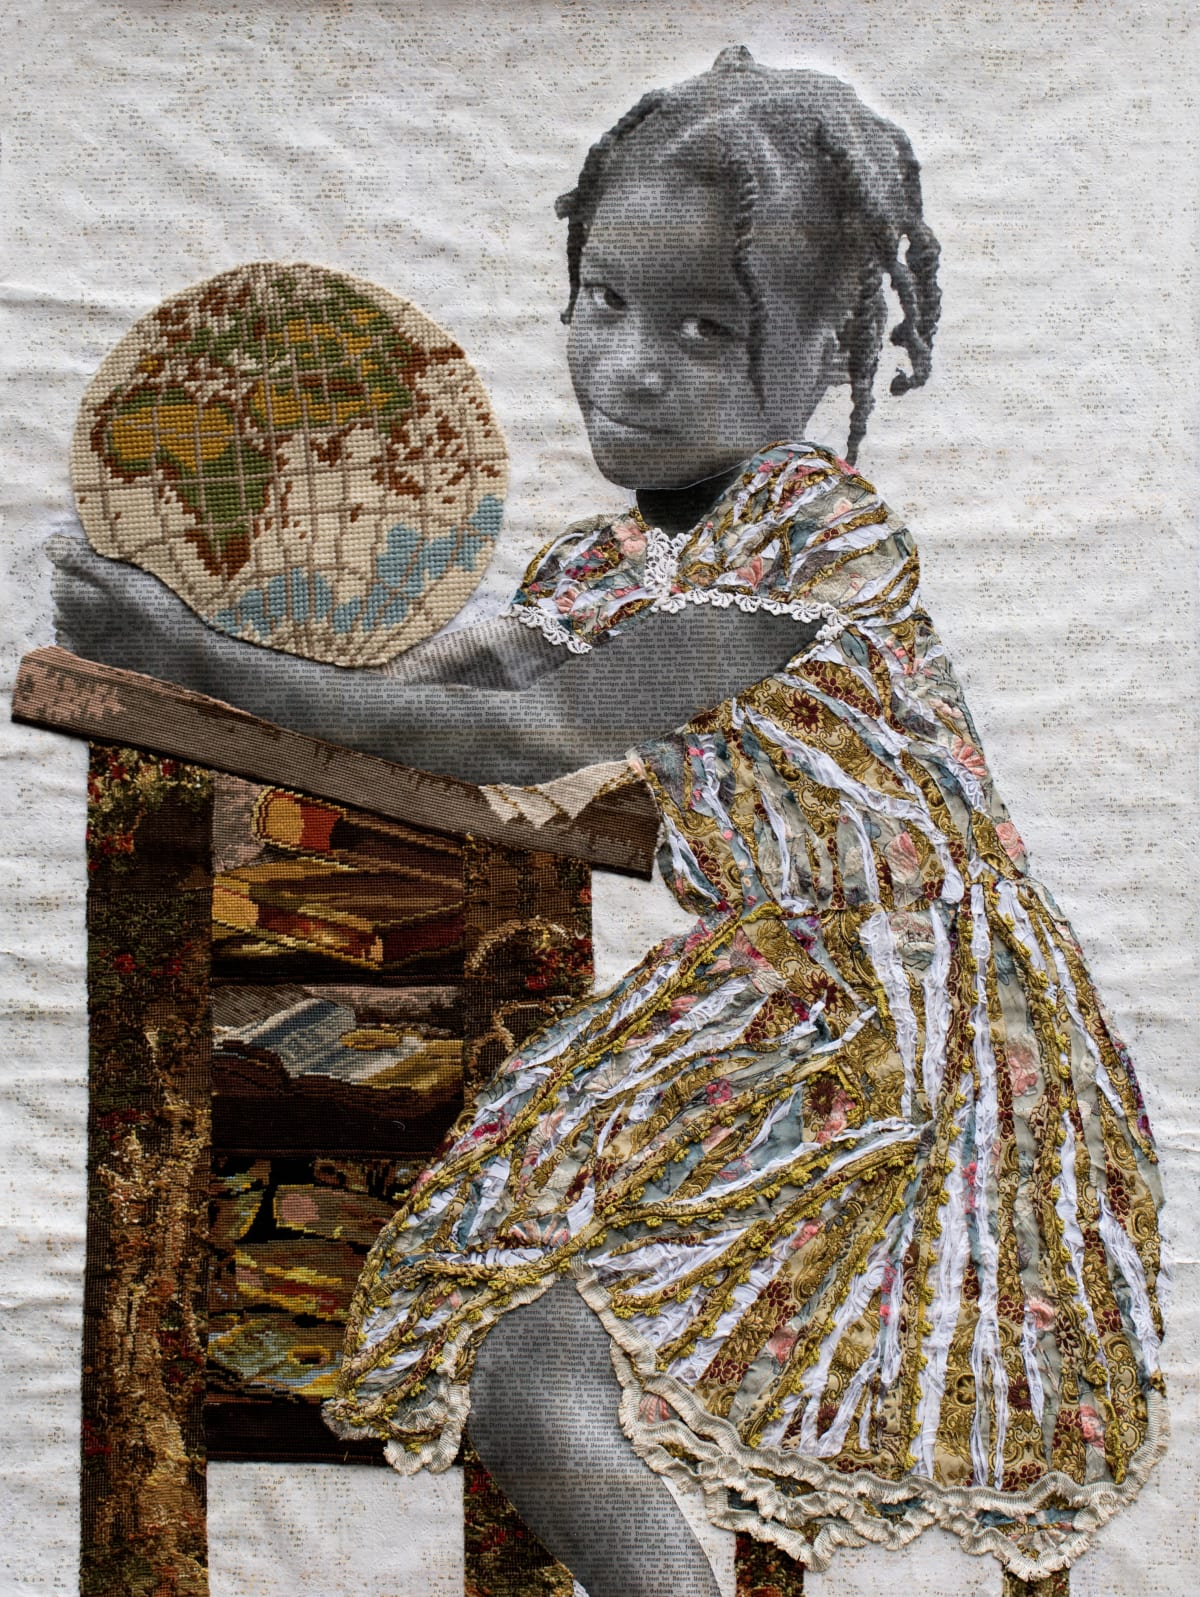 Marion Boehm, Holdind the world in my hands, 2017